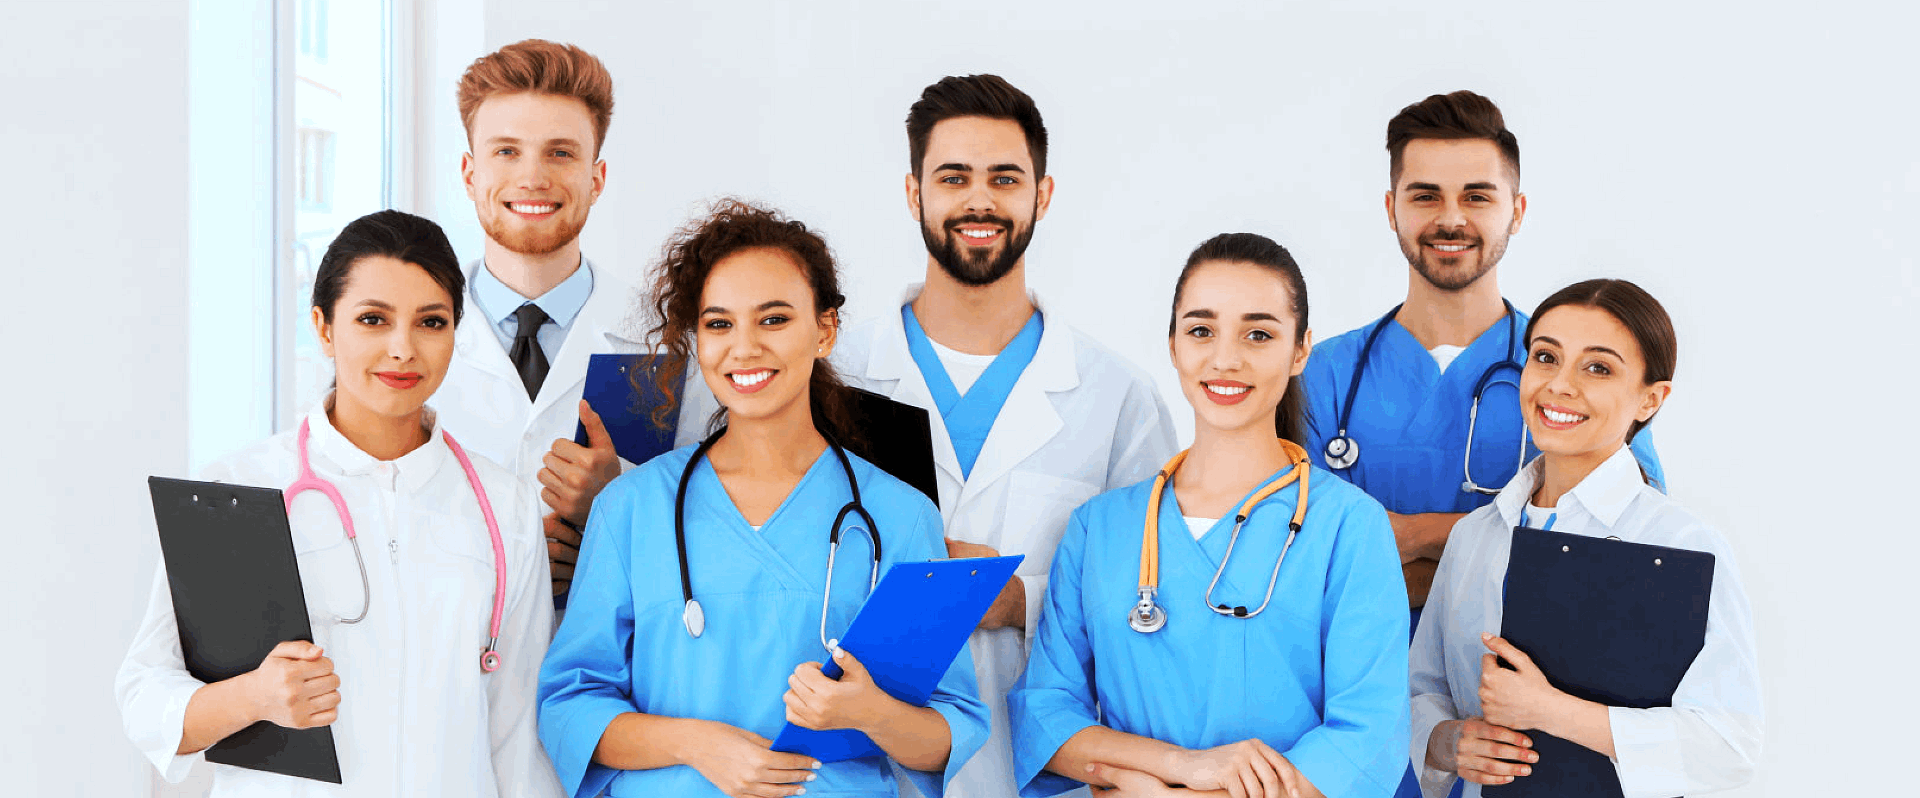 group of medical staffs, each holding a log book